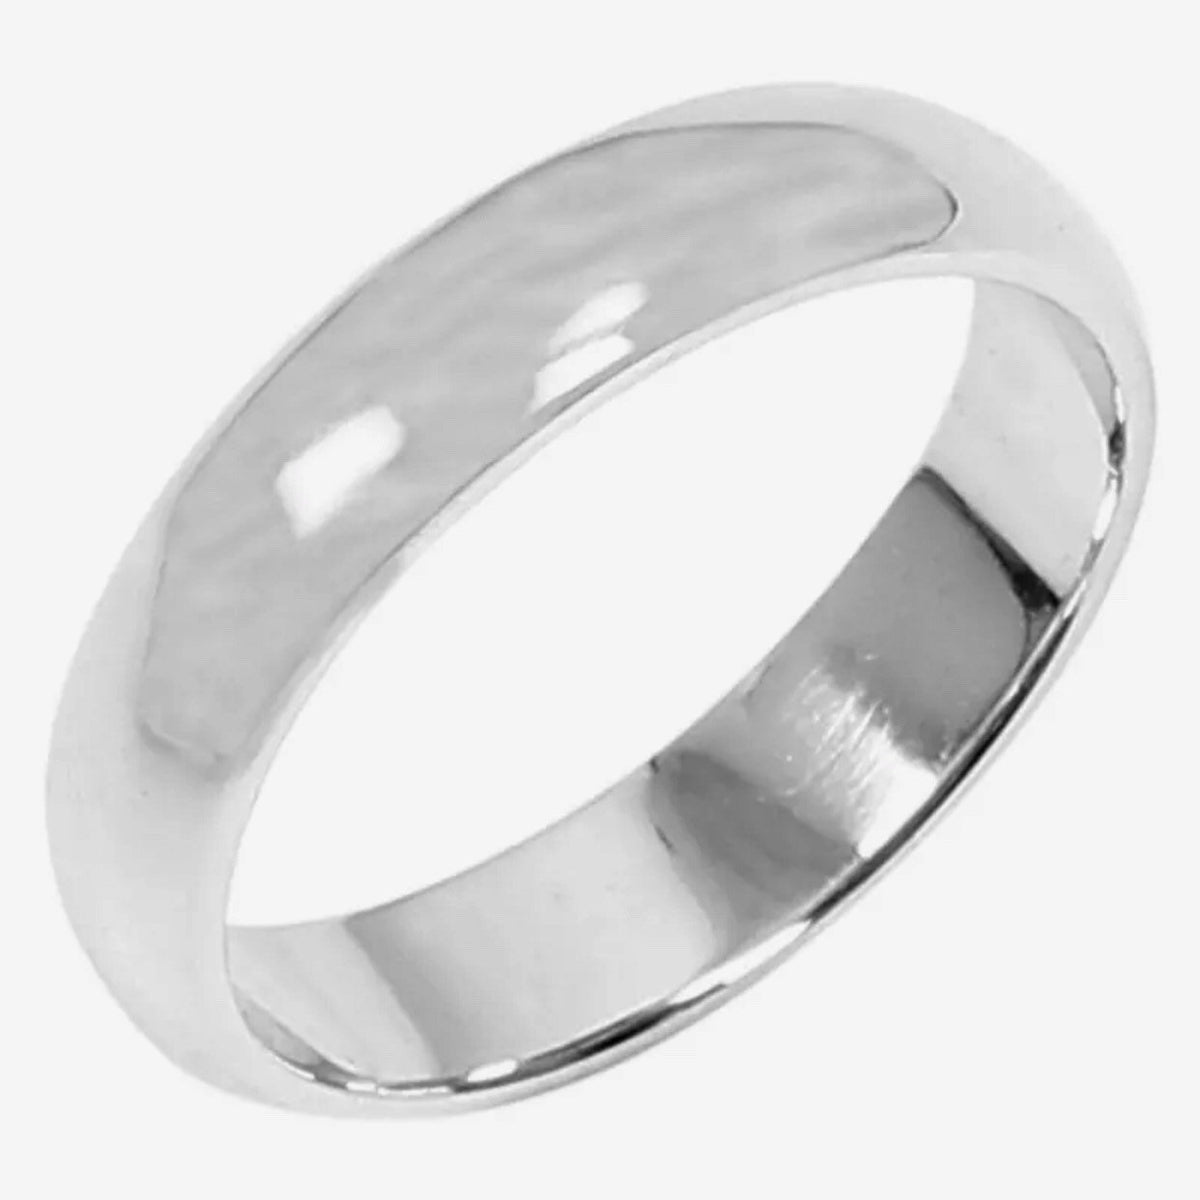 5 . 6mm Size 6 . 75- Handmade solid 990 Silver high polished glossy plain wedding Ring Band